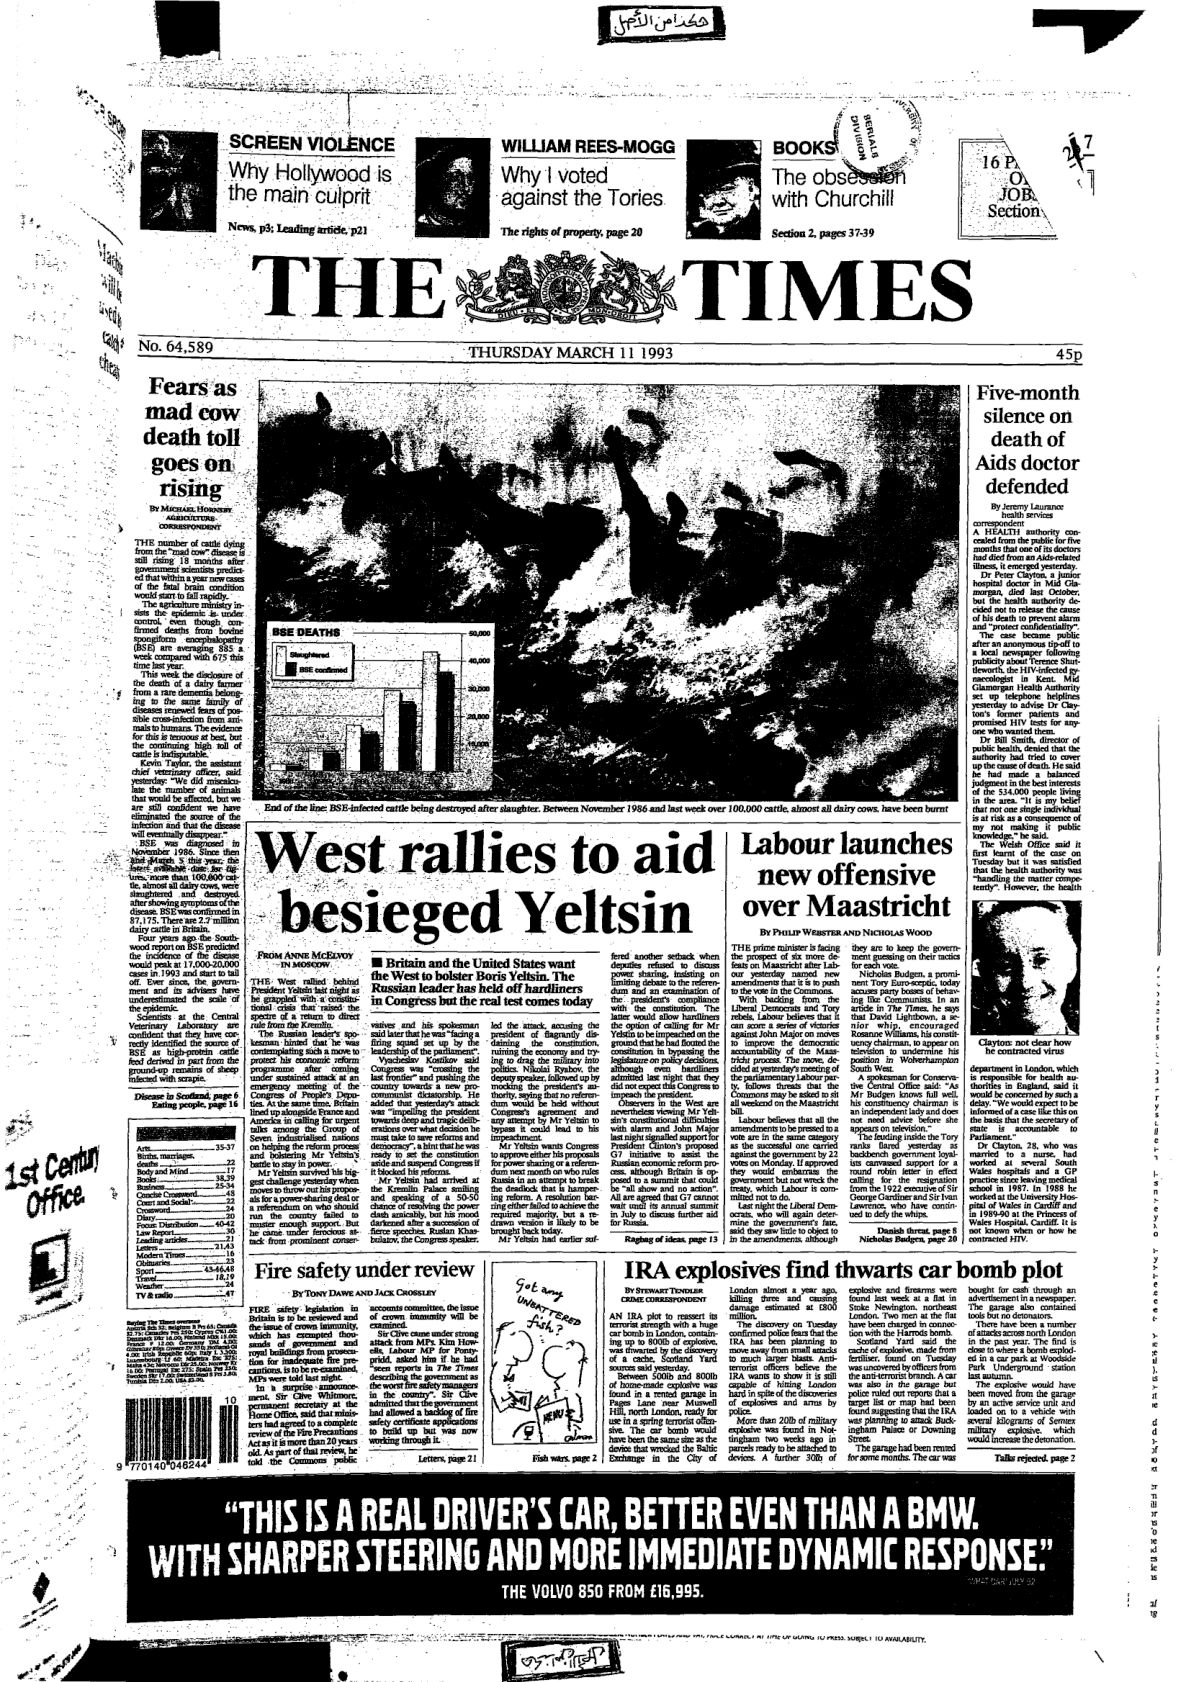 The Times Issue No. 64589. 1993-03-11, UK